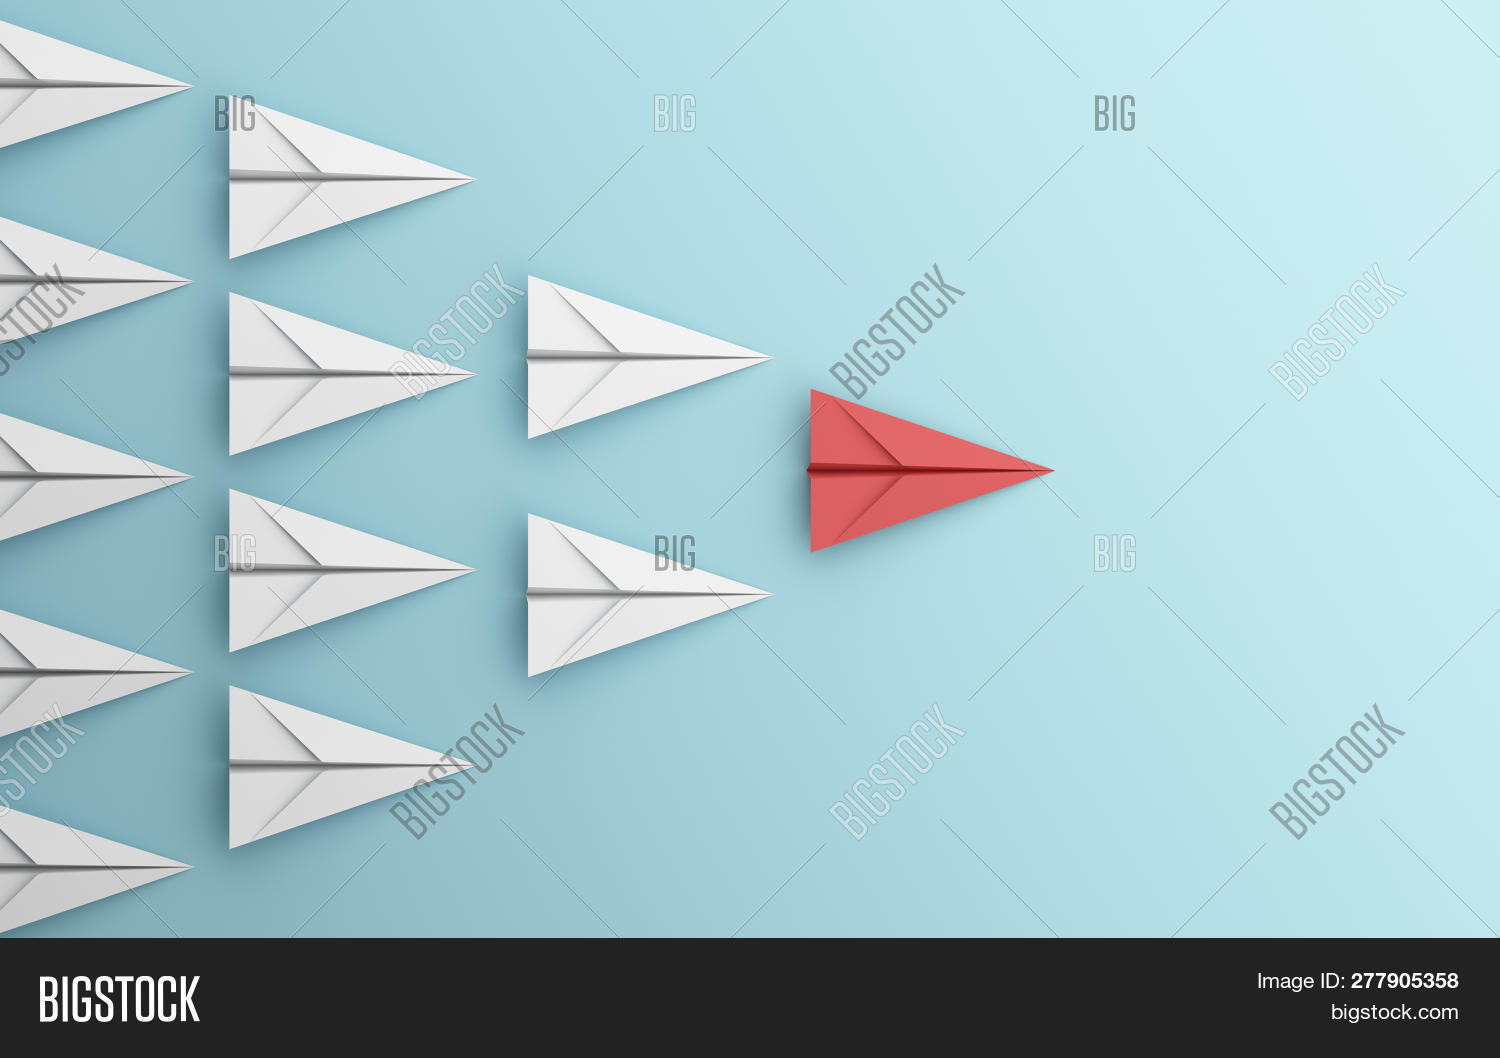 Leadership Different Image & Photo (Free Trial) | Bigstock